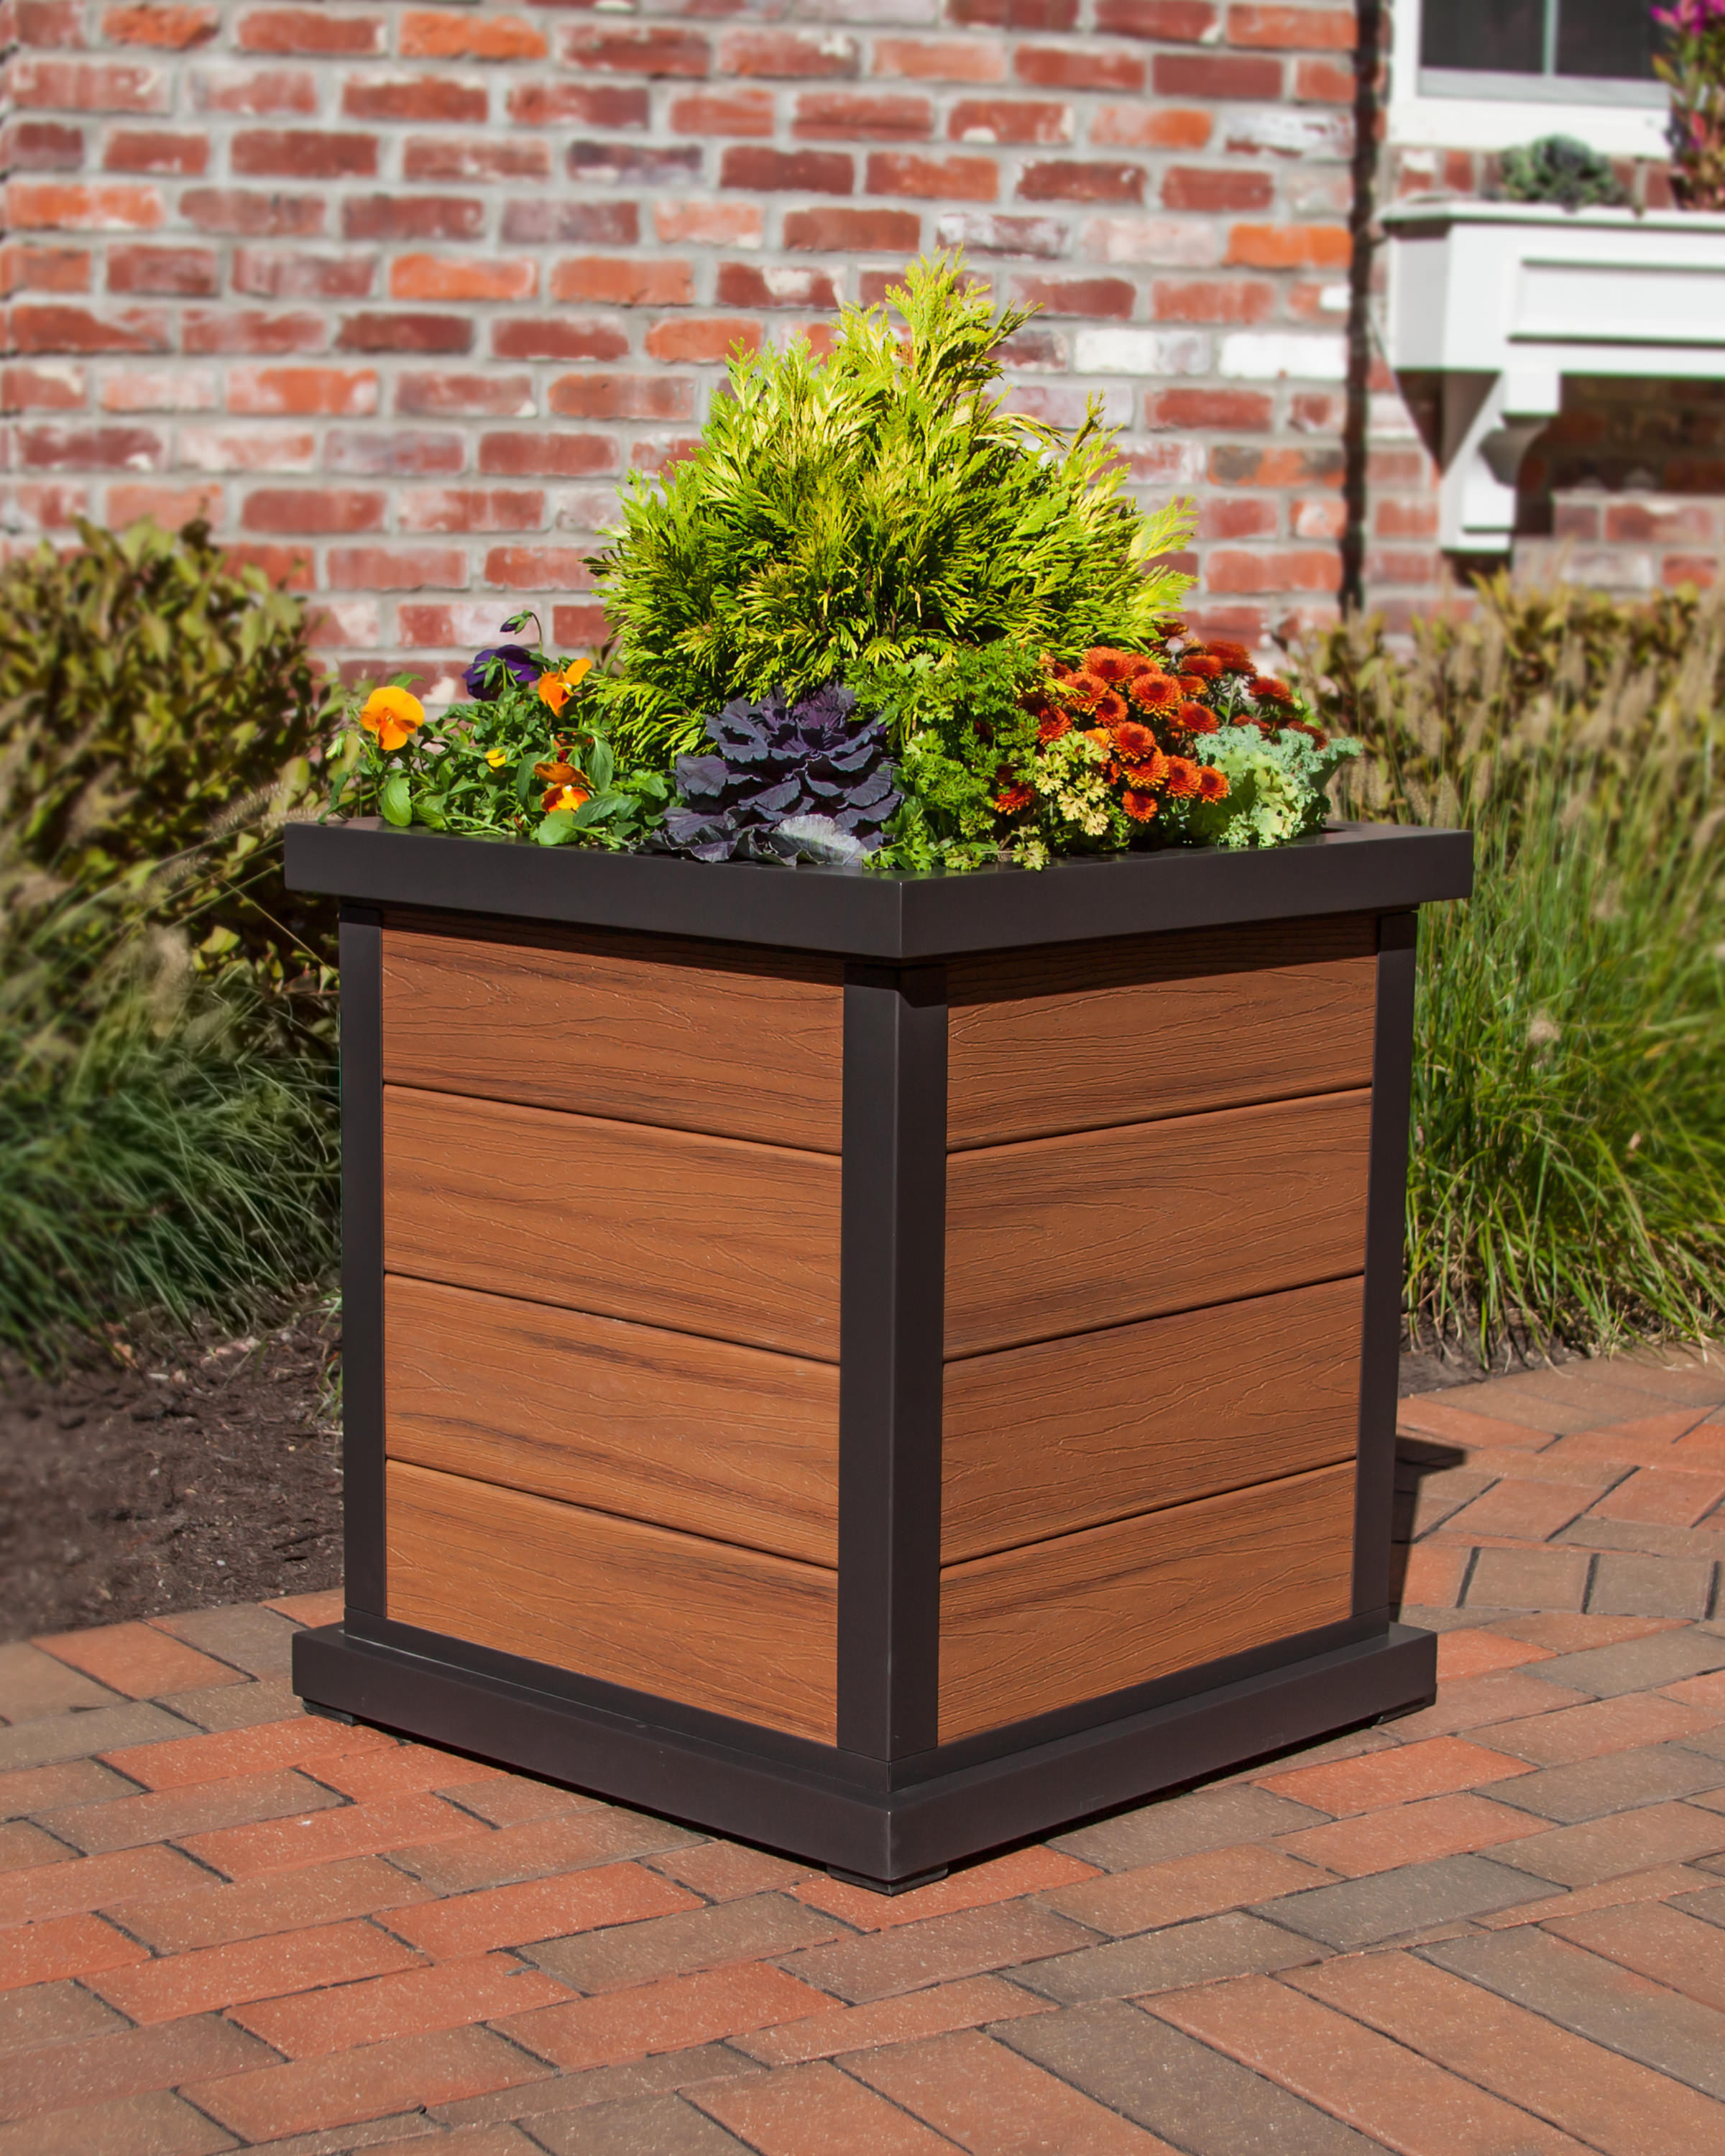 Trex® Outdoor Furniture Cube 24 in Planter 4-Board